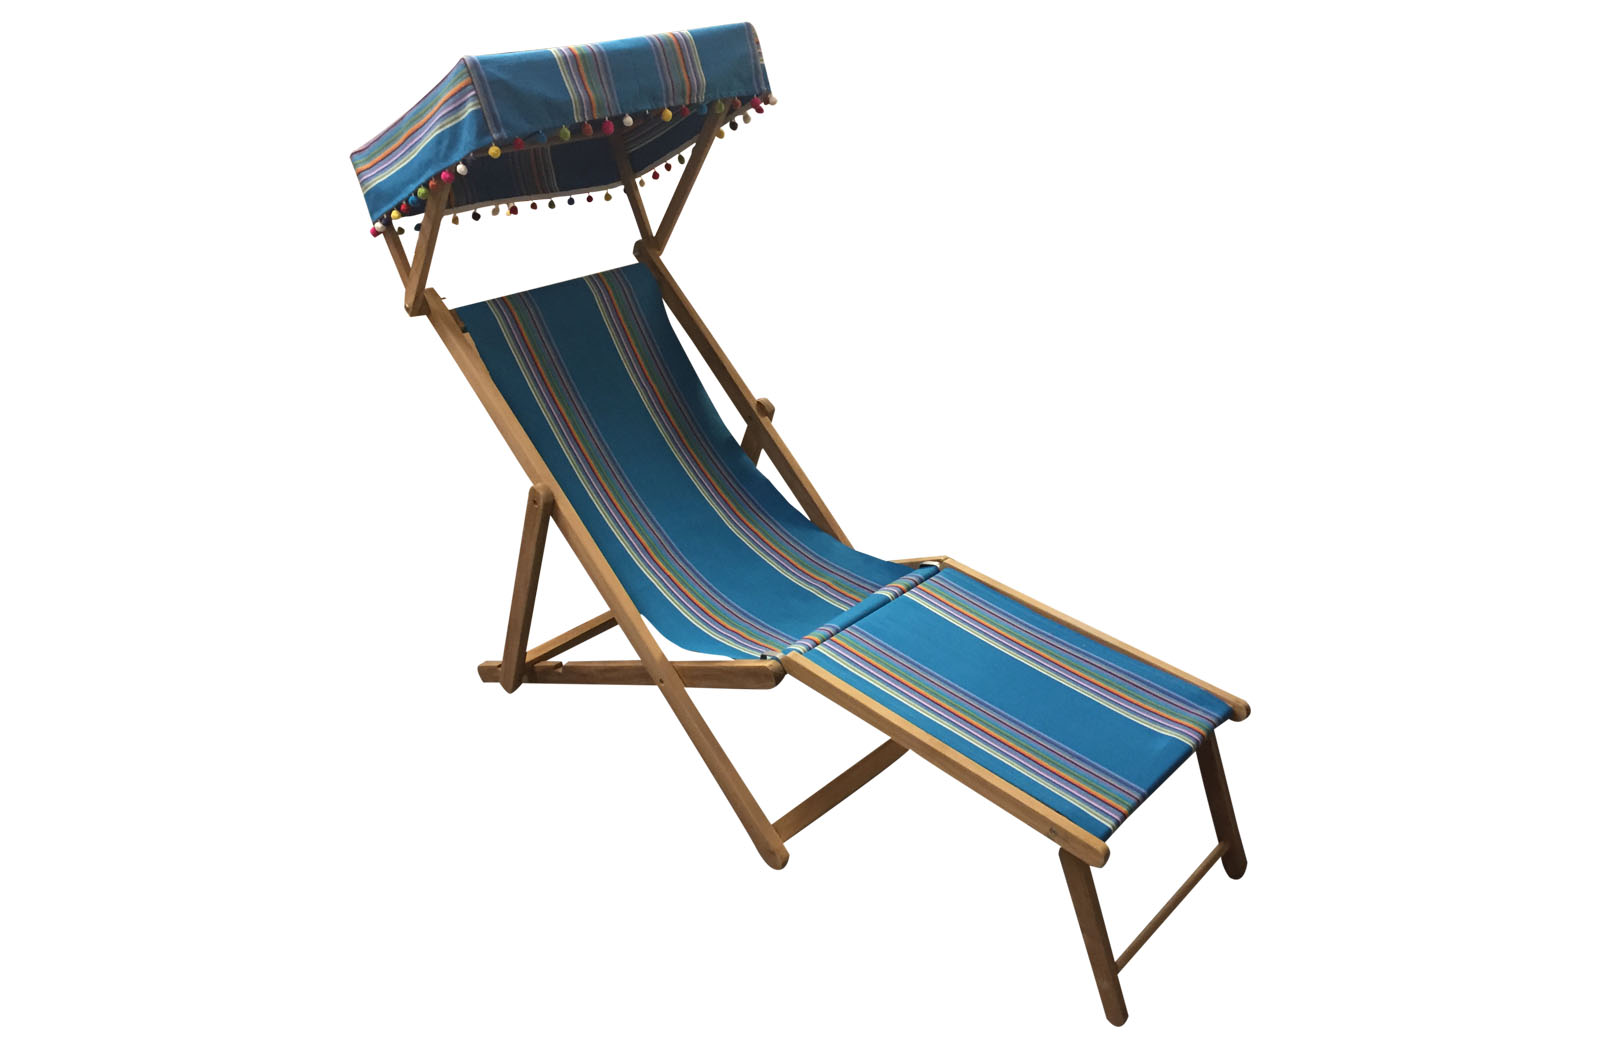 Edwardian Deckchairs with Canopy and Footstool dark turquoise, rainbow